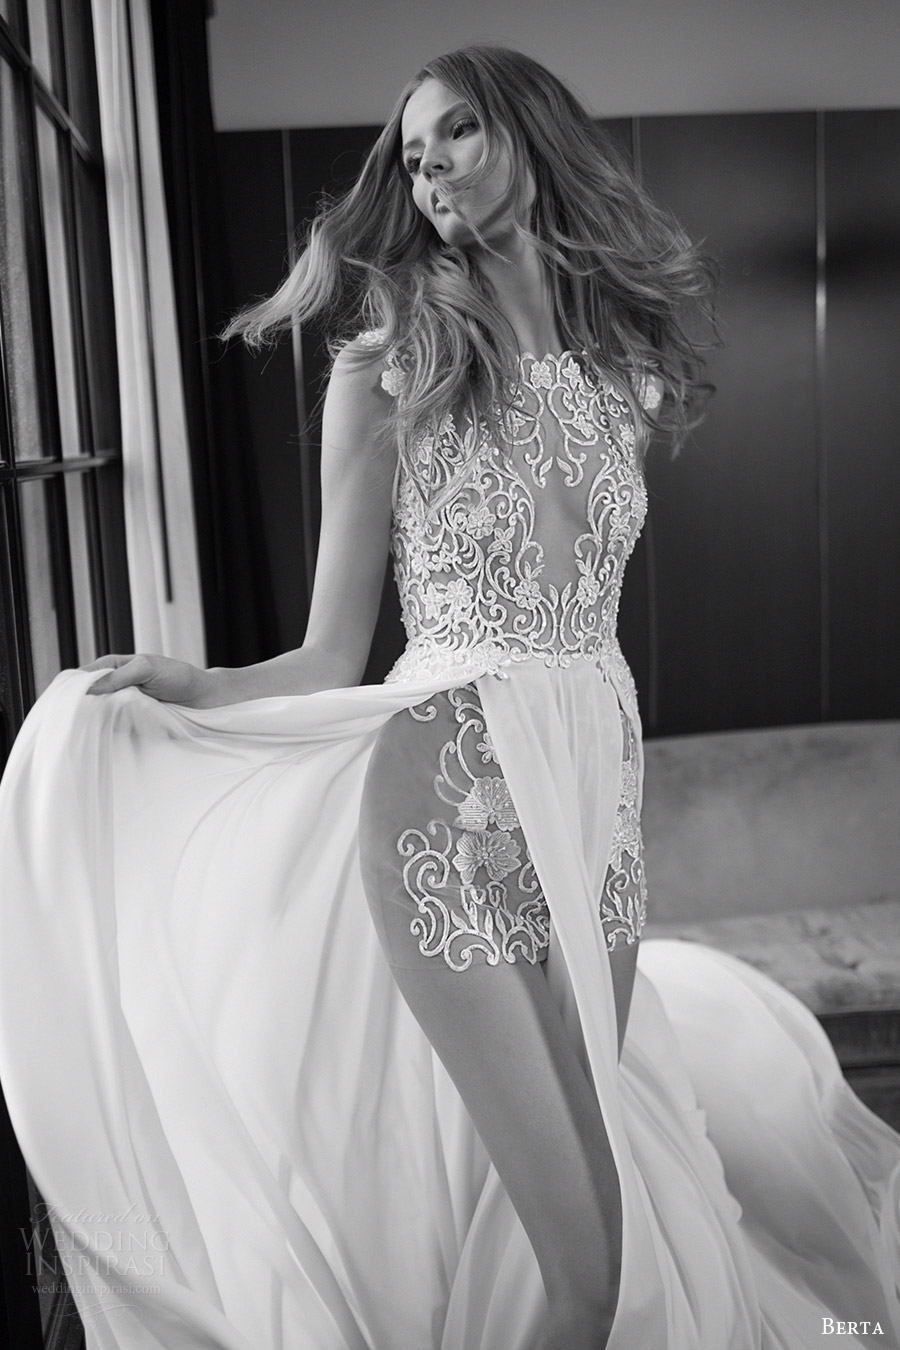 berta bridal fall 2016 sleeveless illusion jewel neck wedding dress aline double slit overskirt (16 106) zv